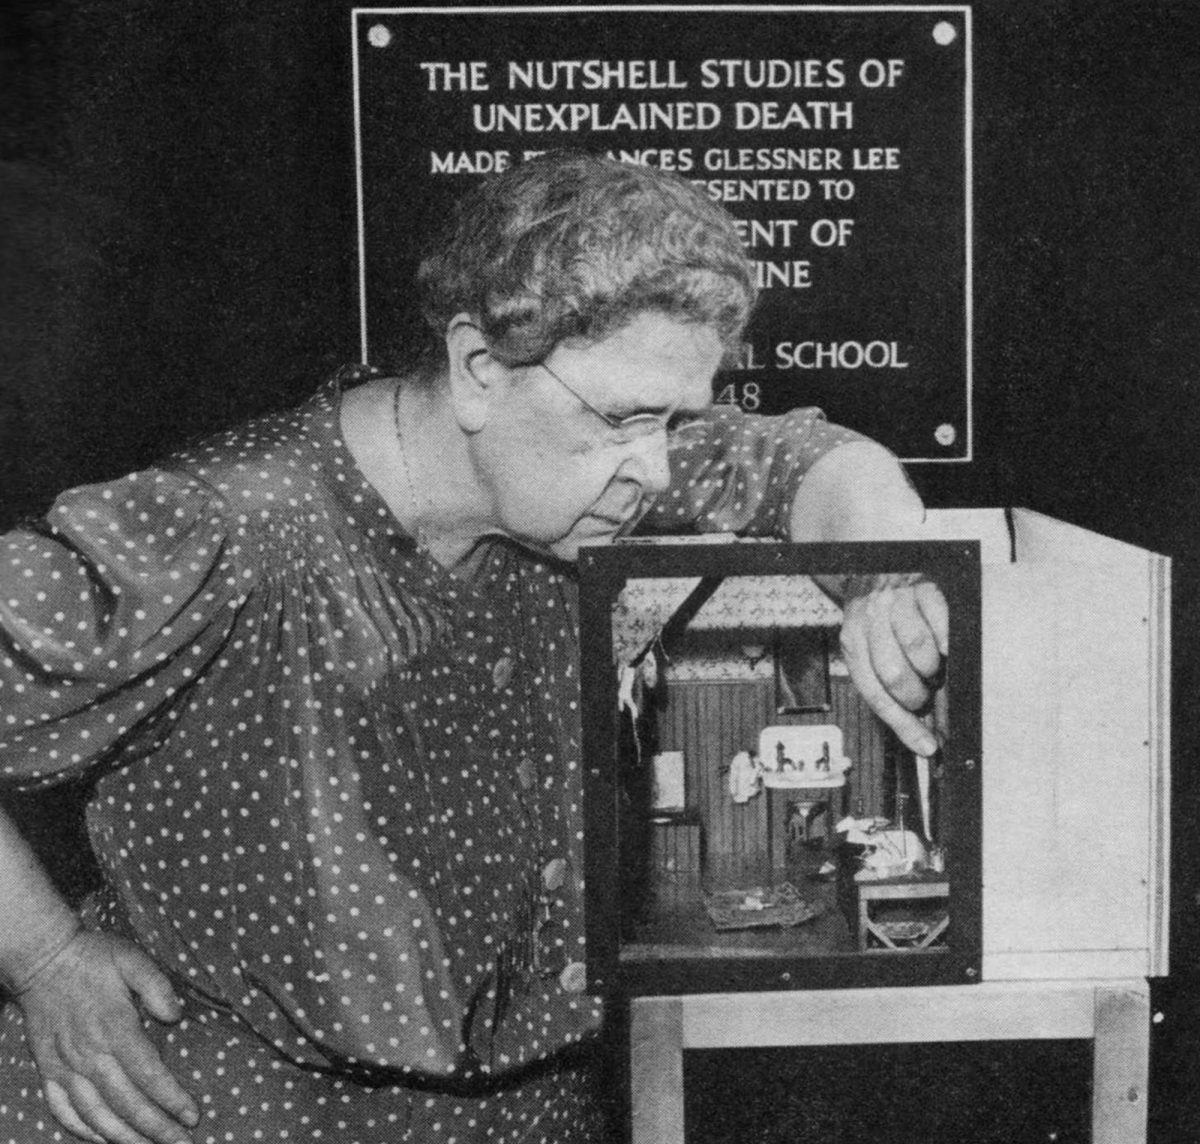 Frances Glessner Lee with her Nutshell diorama, Dark Bathroom. Image courtesy Glessner House Museum, Chicago, IL